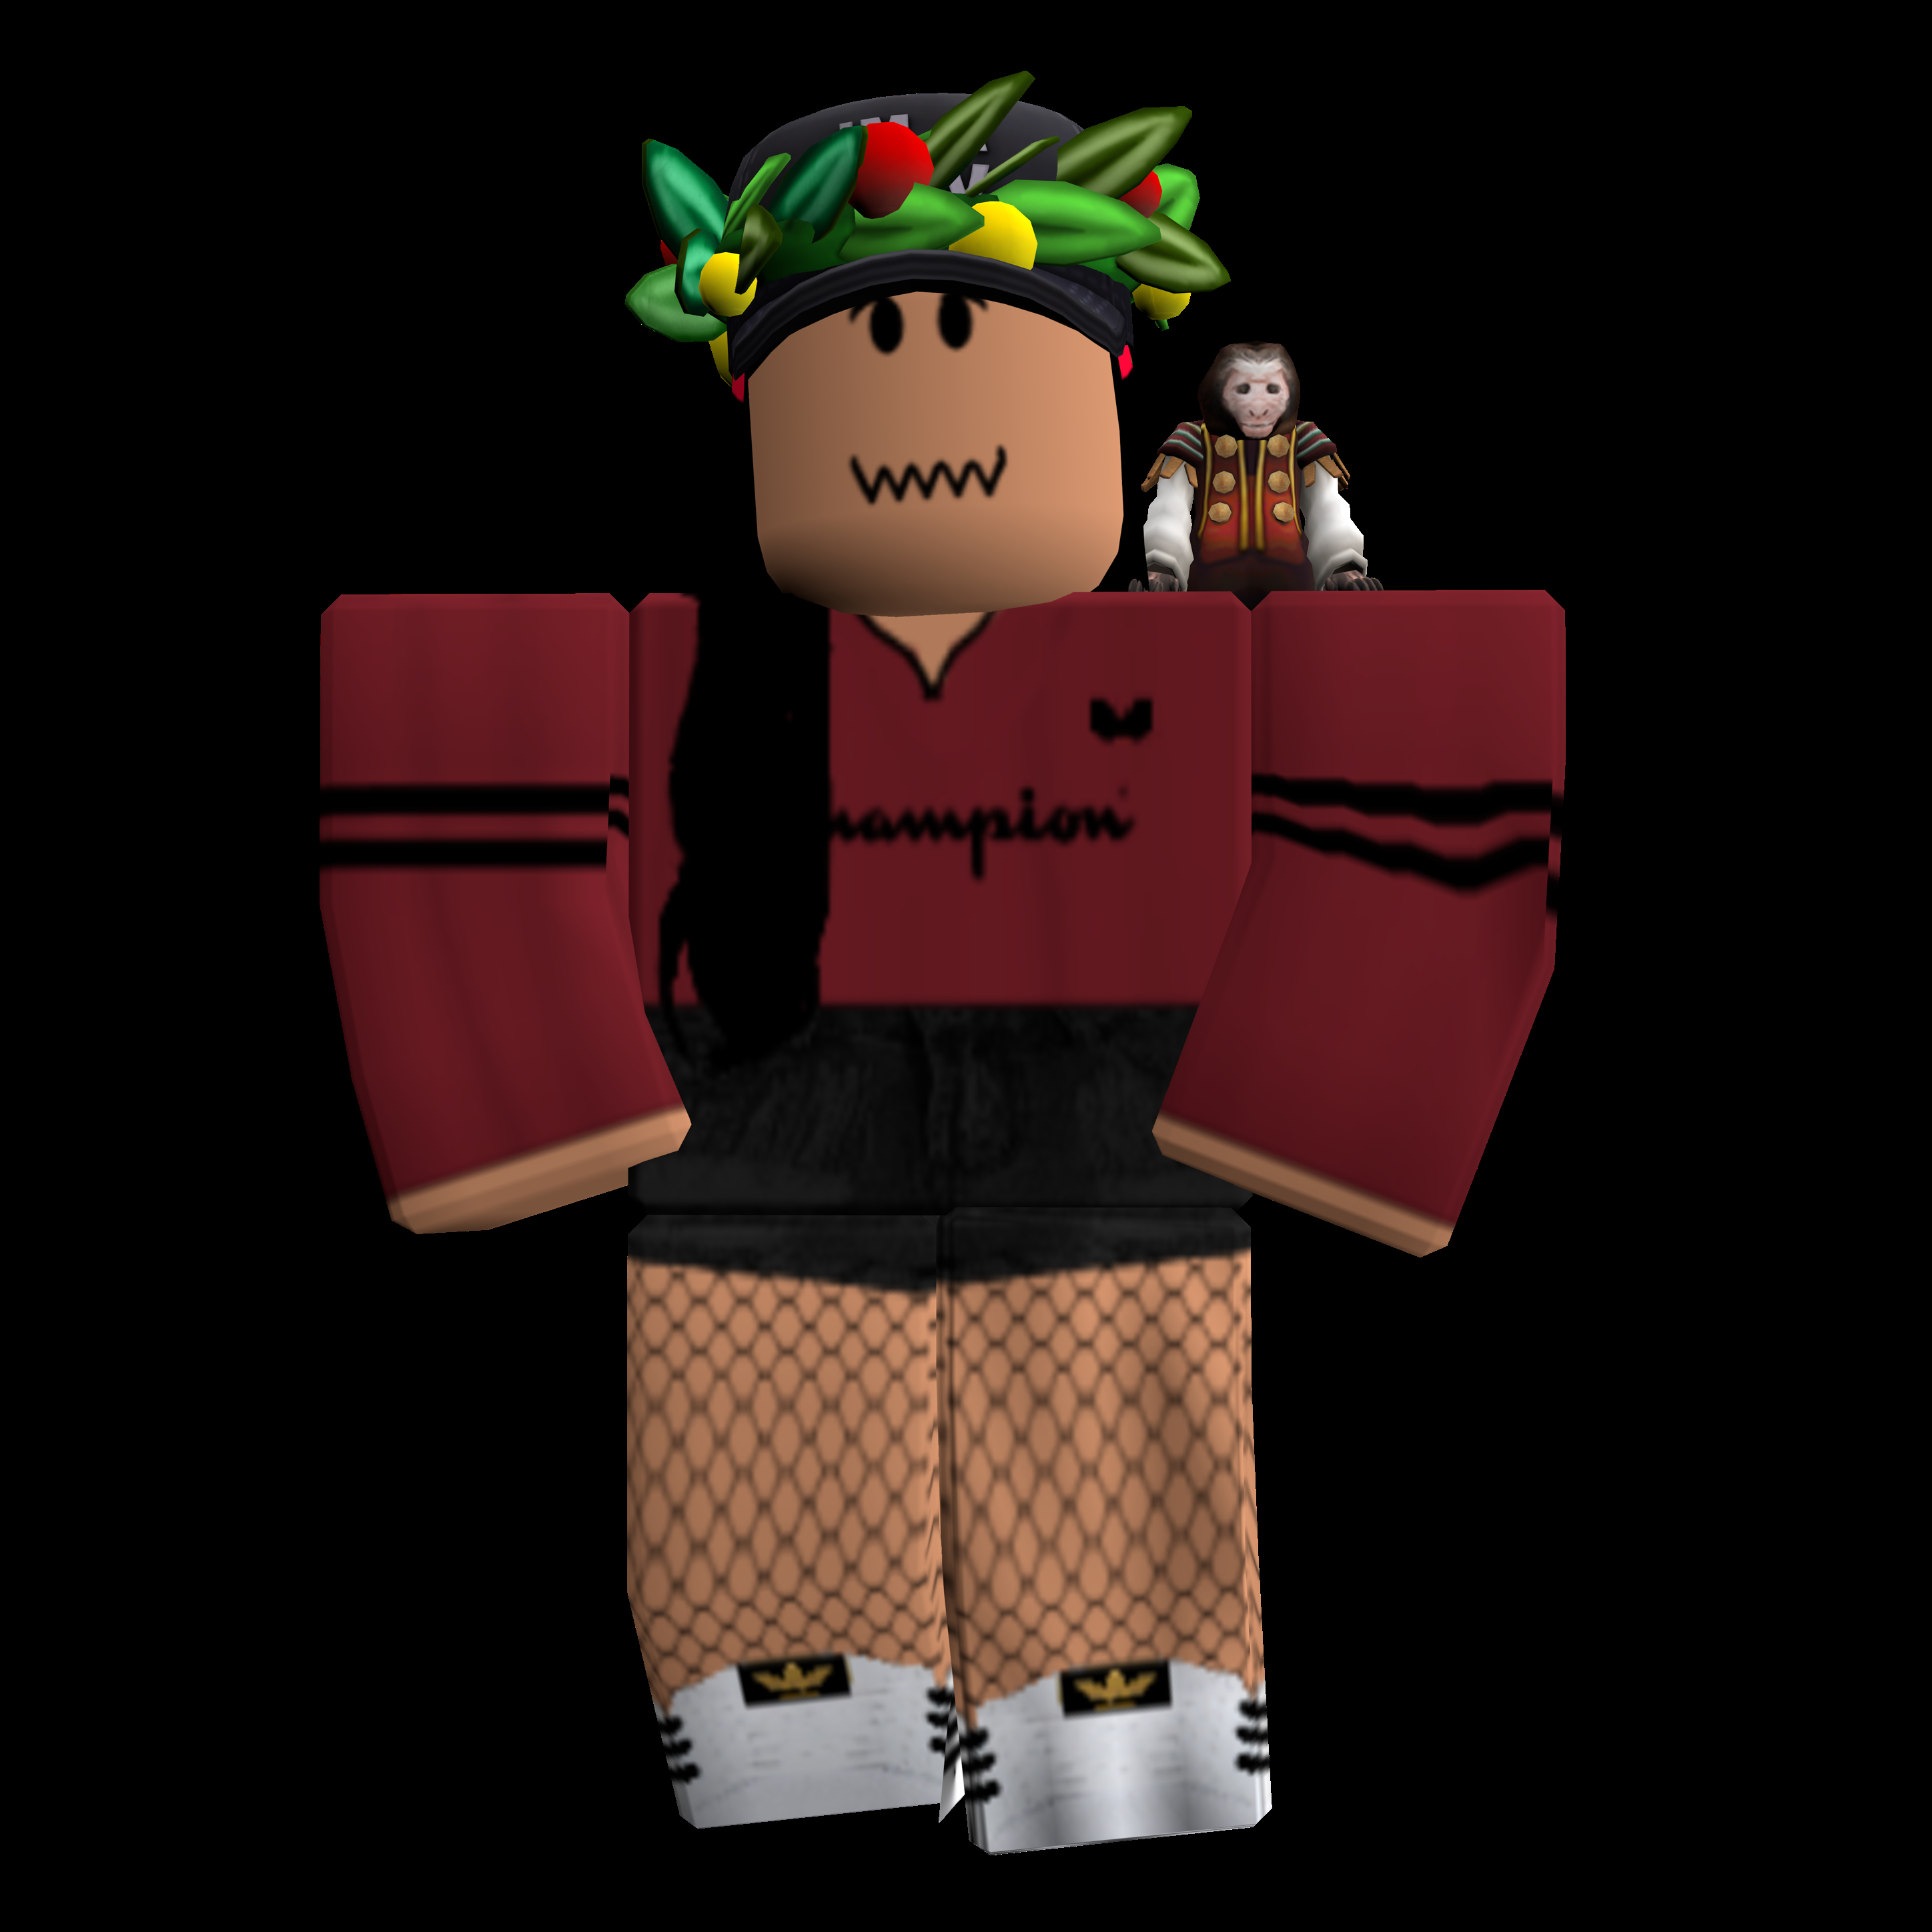 Roblox Avatar Free Clothes 2 Advice That You Must Listen Before Embarking On Roblox Avatar F In 2020 Roblox Creator Roblox Avatar